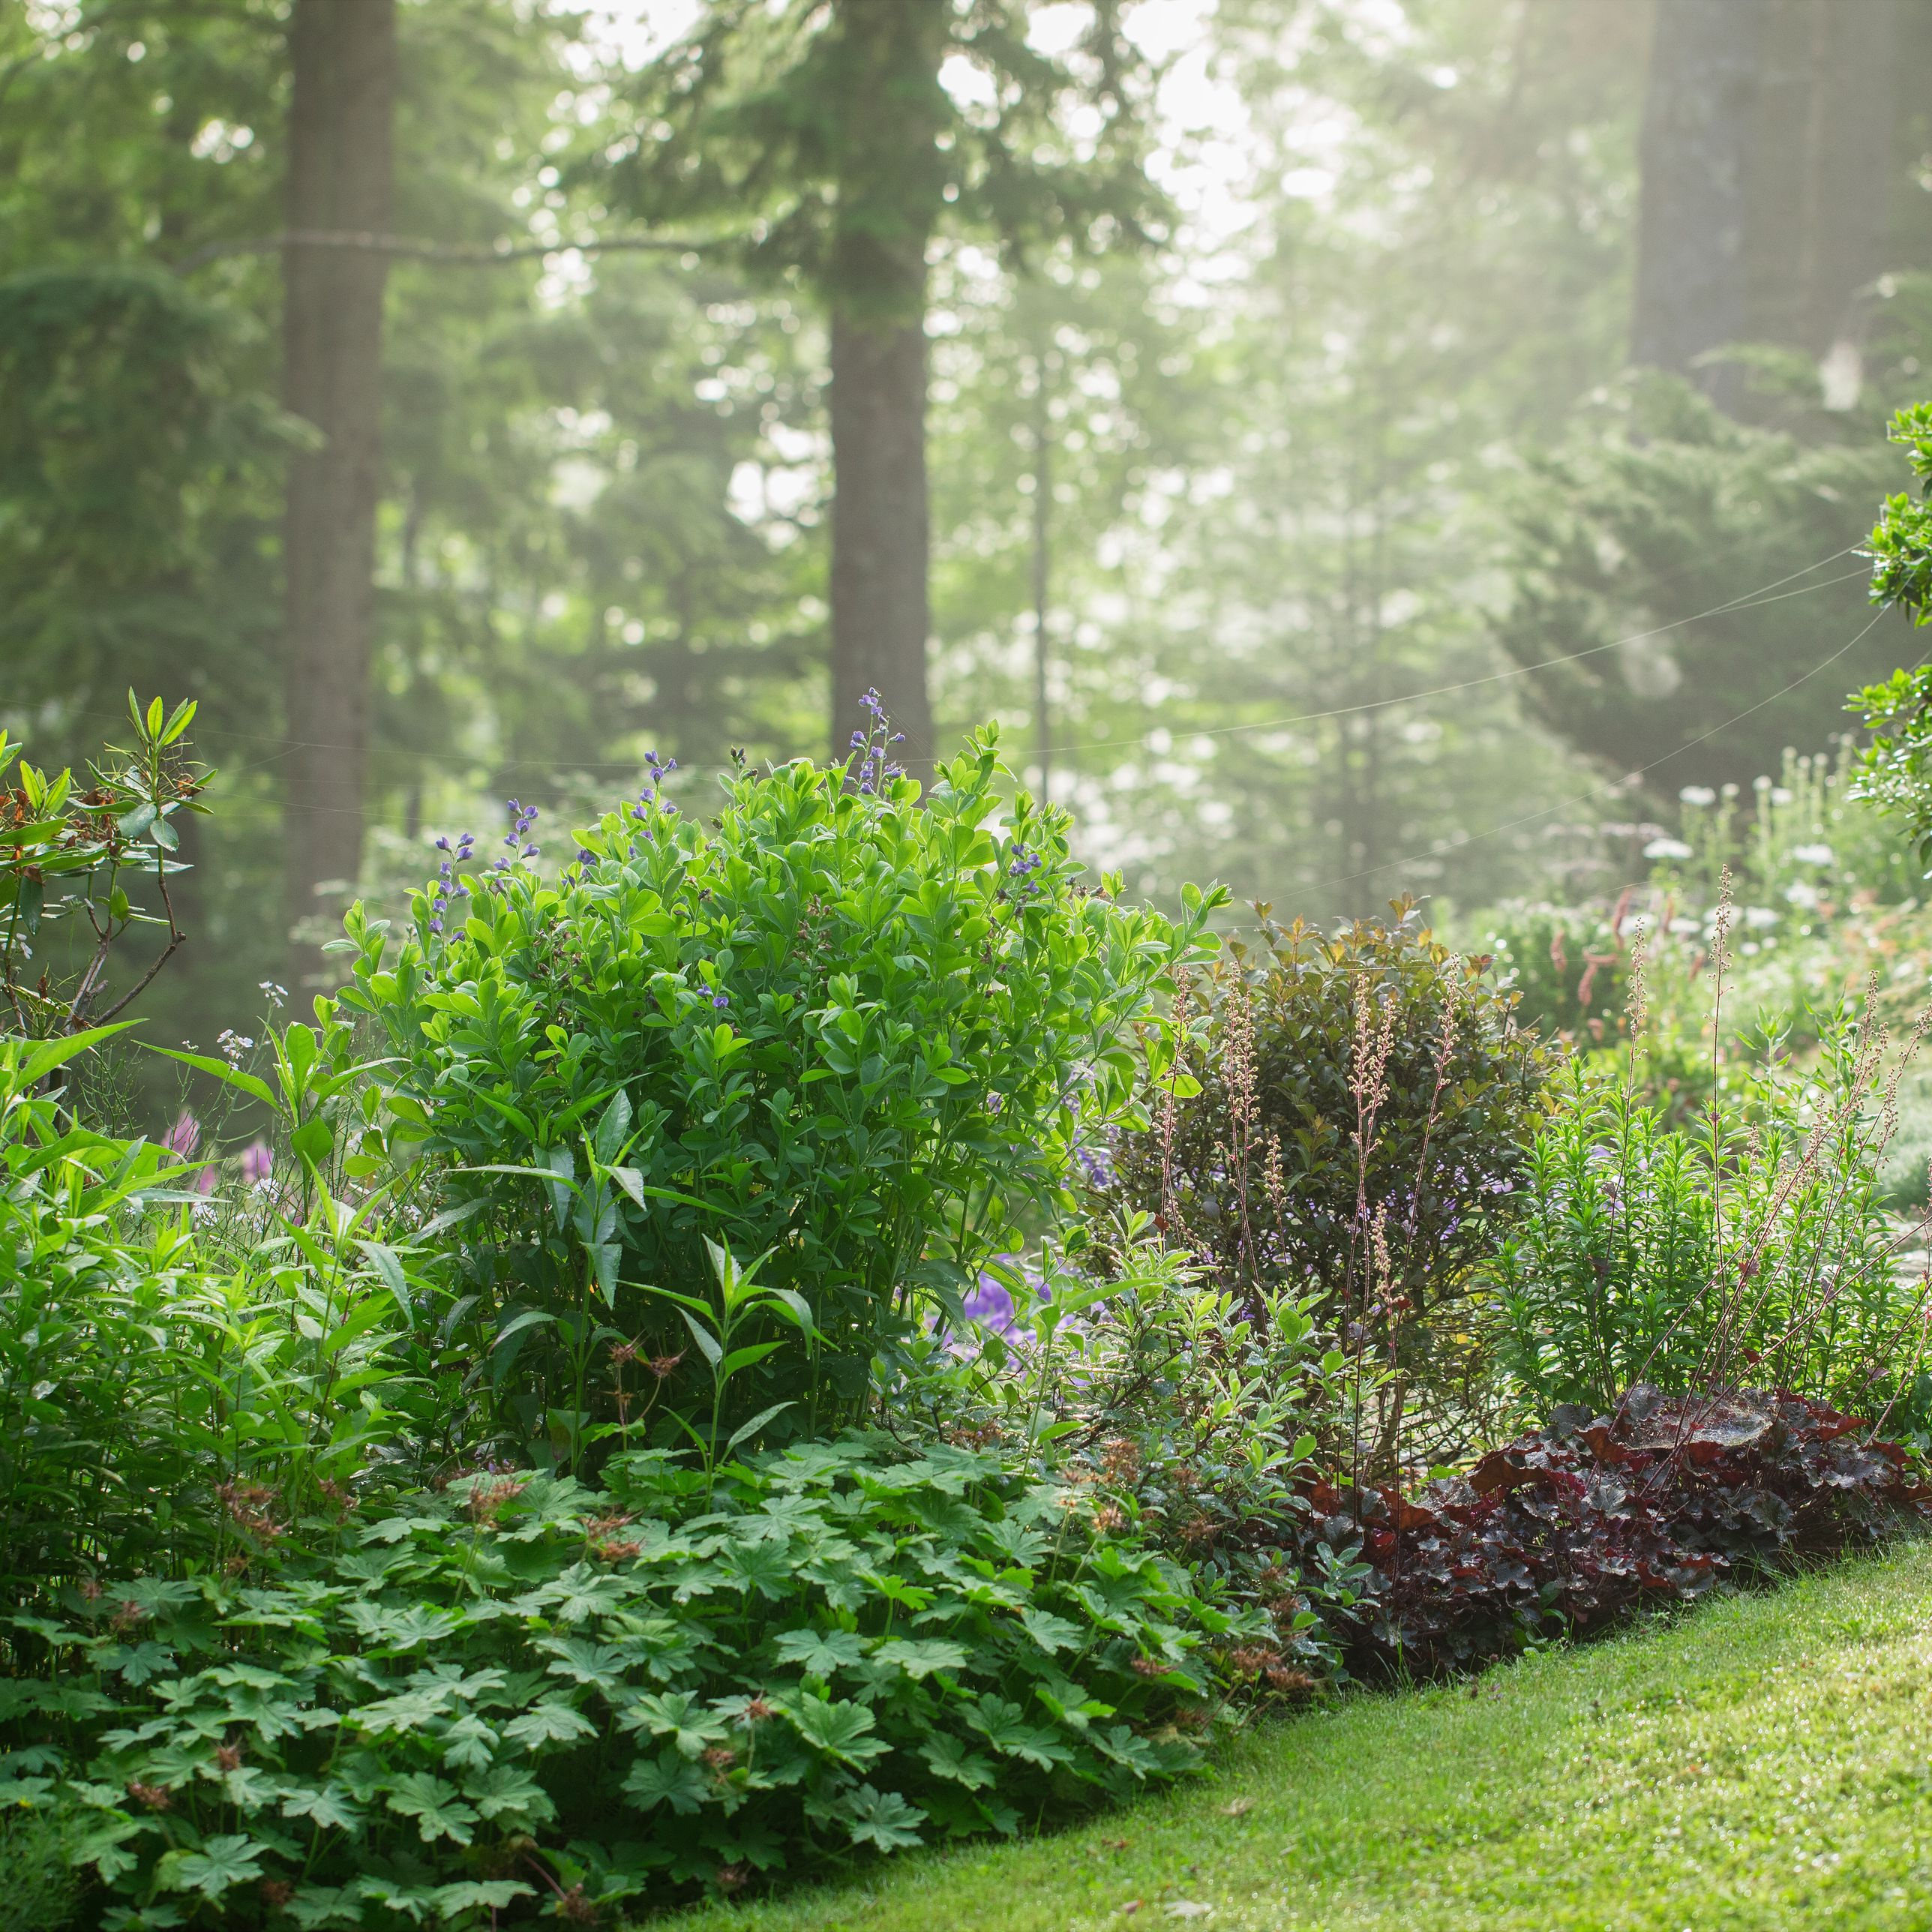 How To Get Free Plants For Your Garden